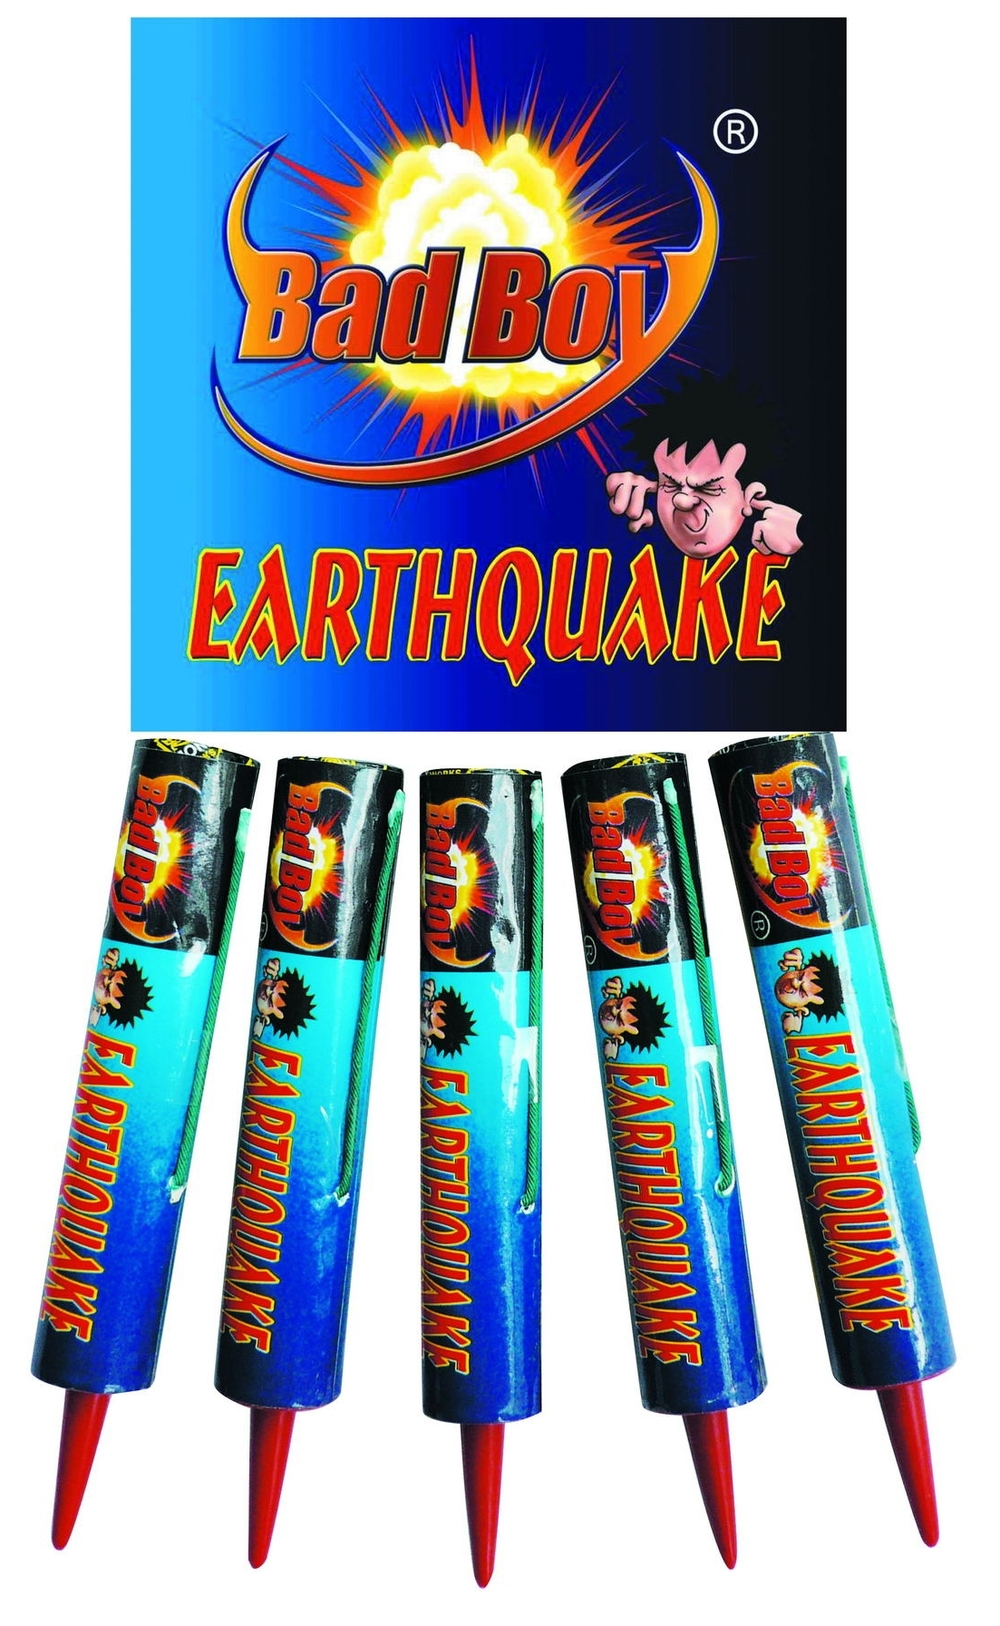 Earthquake 5pk - RRP £7.00